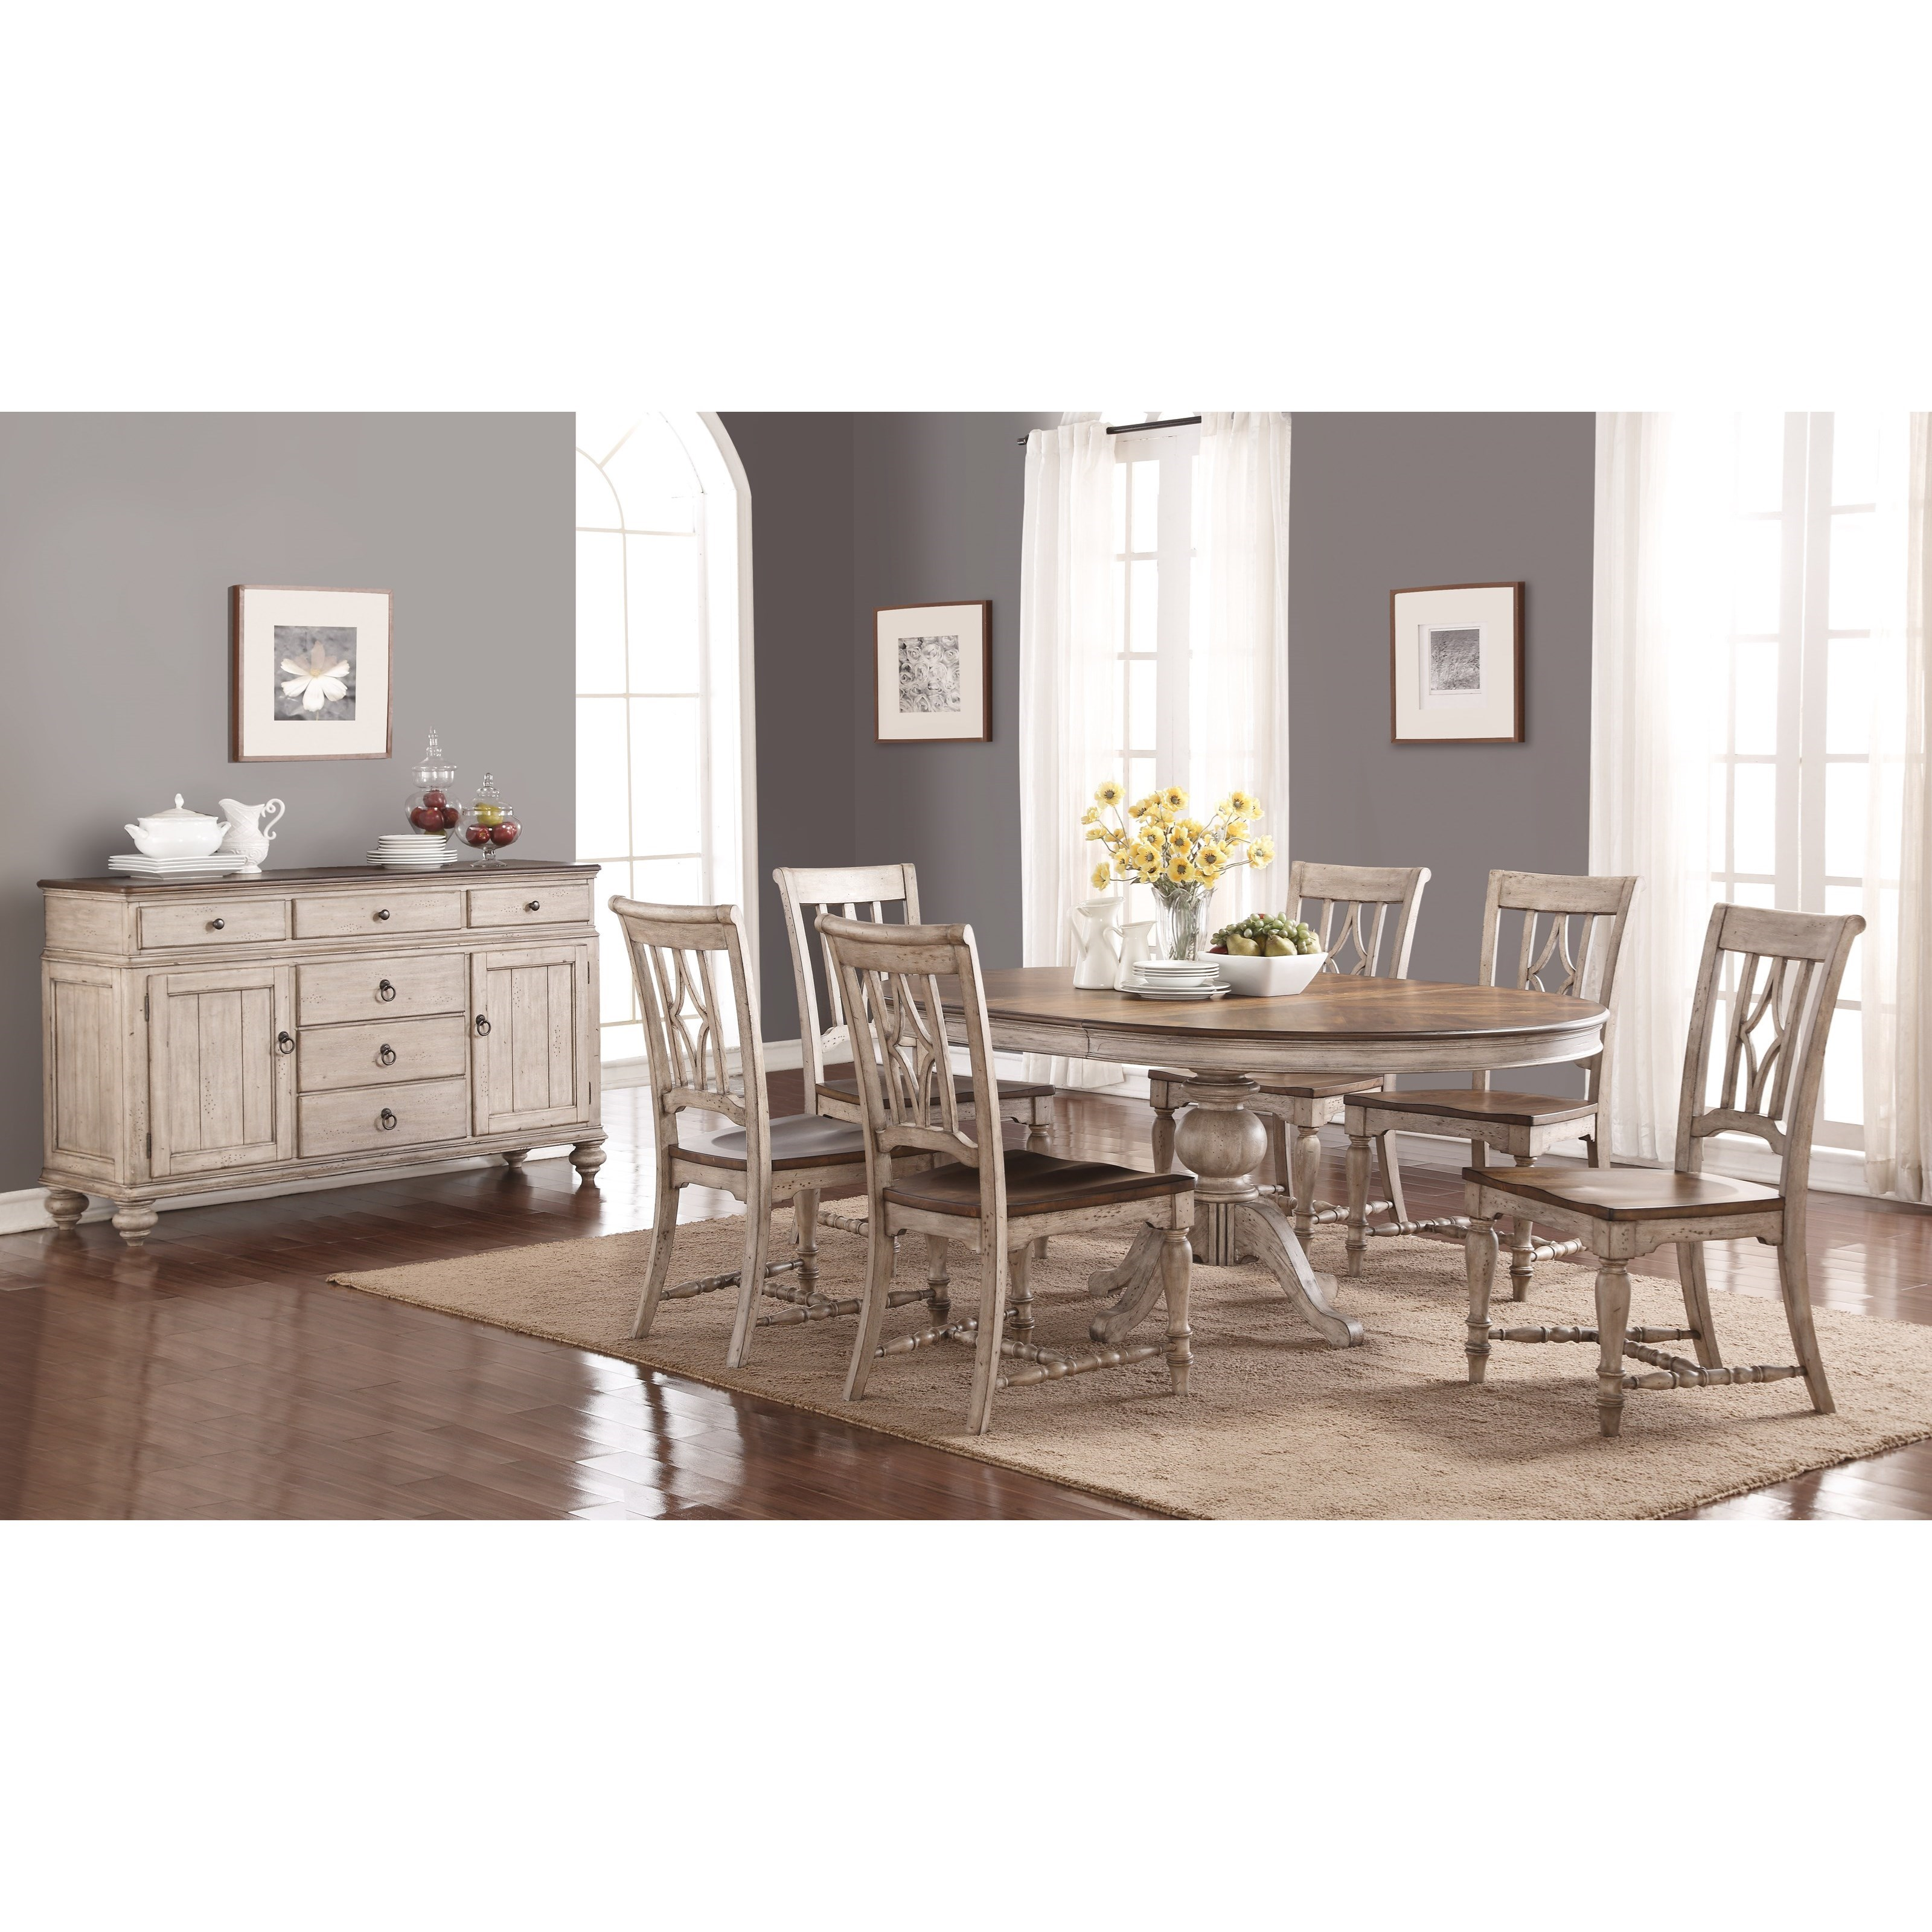 Plymouth Dining Room Group by Flexsteel Wynwood Collection at Fashion Furniture